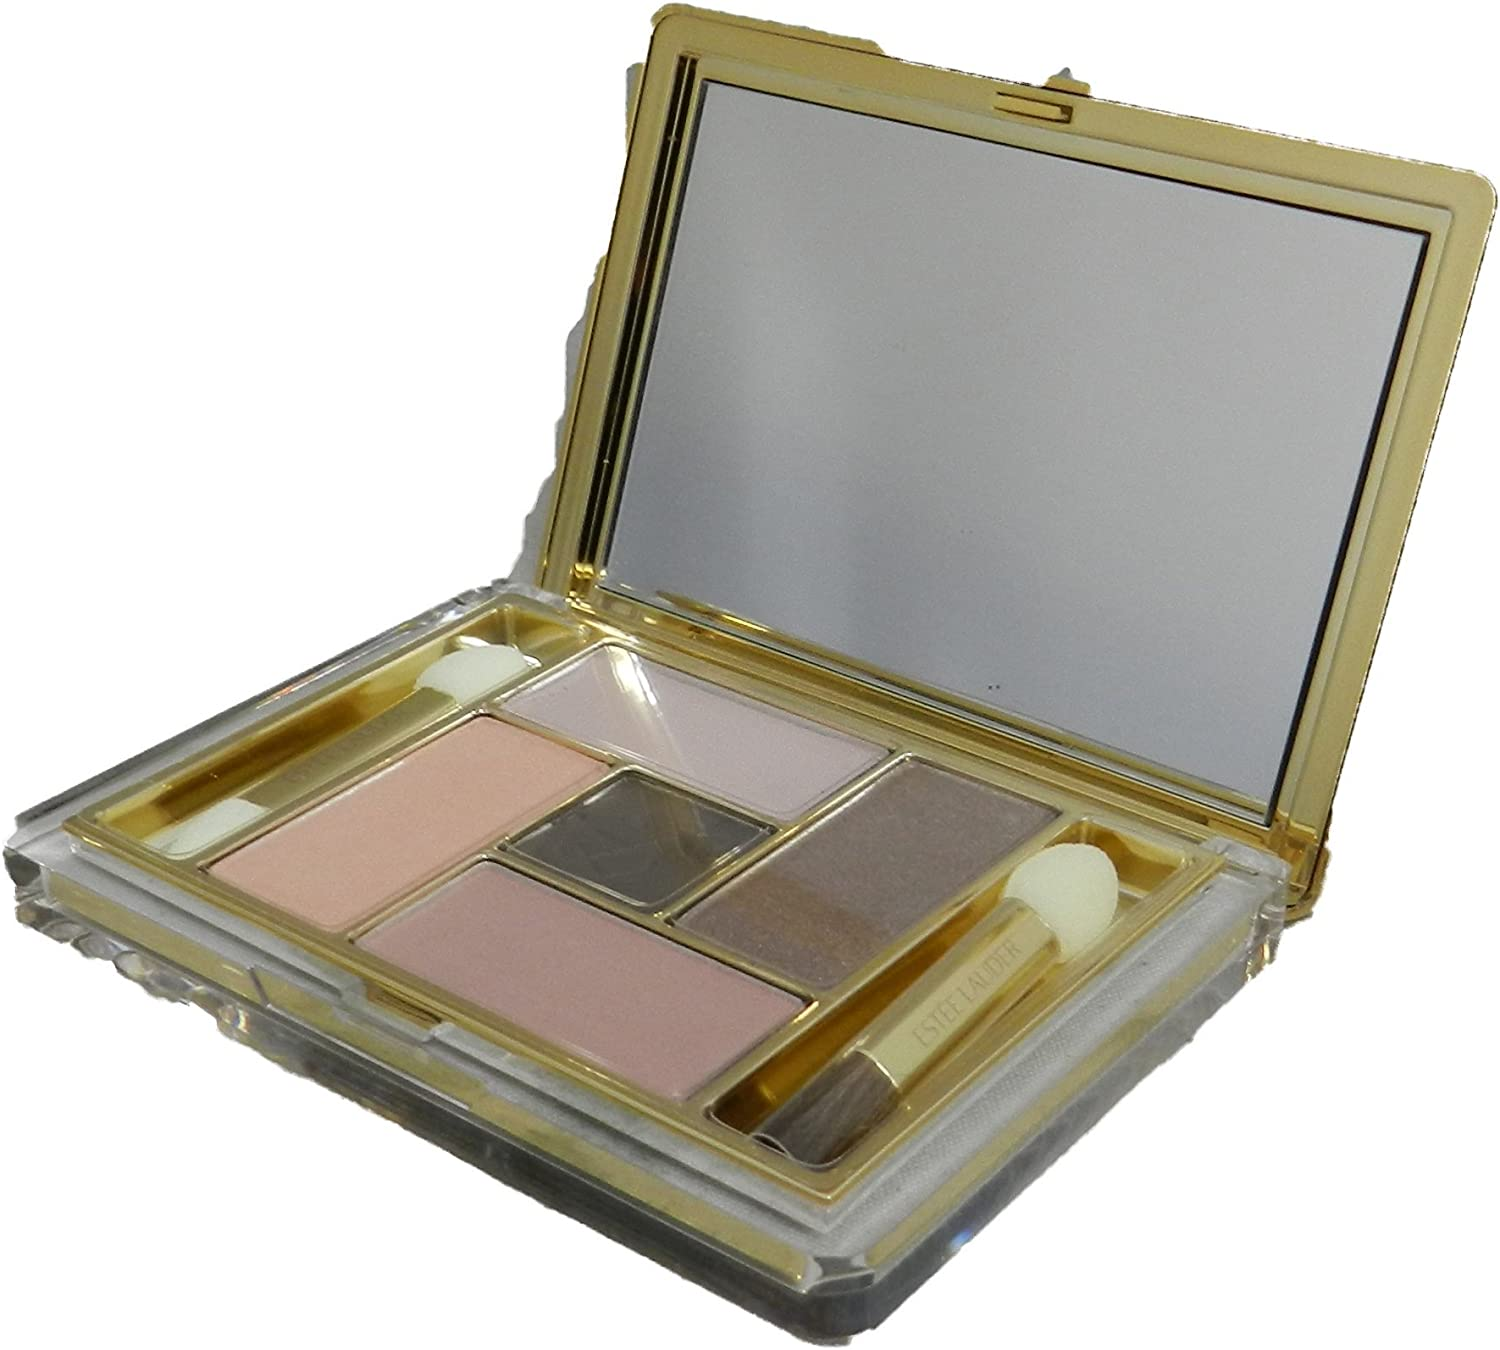 Estee Lauder Pure Color cinco pétalos de color paleta de sombra de ojos – 15 Posh, 7,6 g: Amazon.es: Belleza